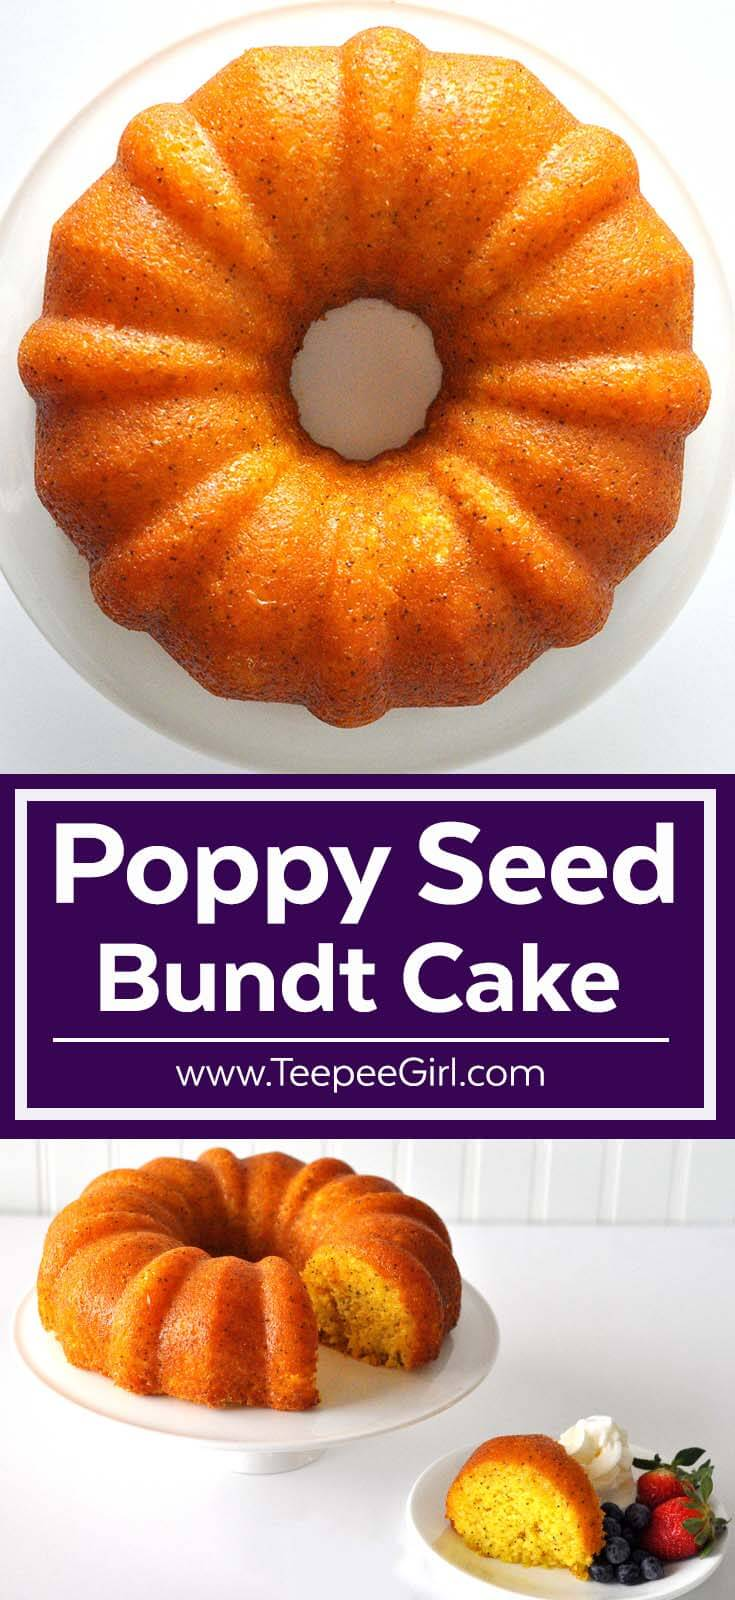 This easy and delicious Poppy Seed Bundt cake will make you a kitchen rock star! It's so quick to make and completely irresistible! Get the recipe today at www.TeepeeGirl.com.